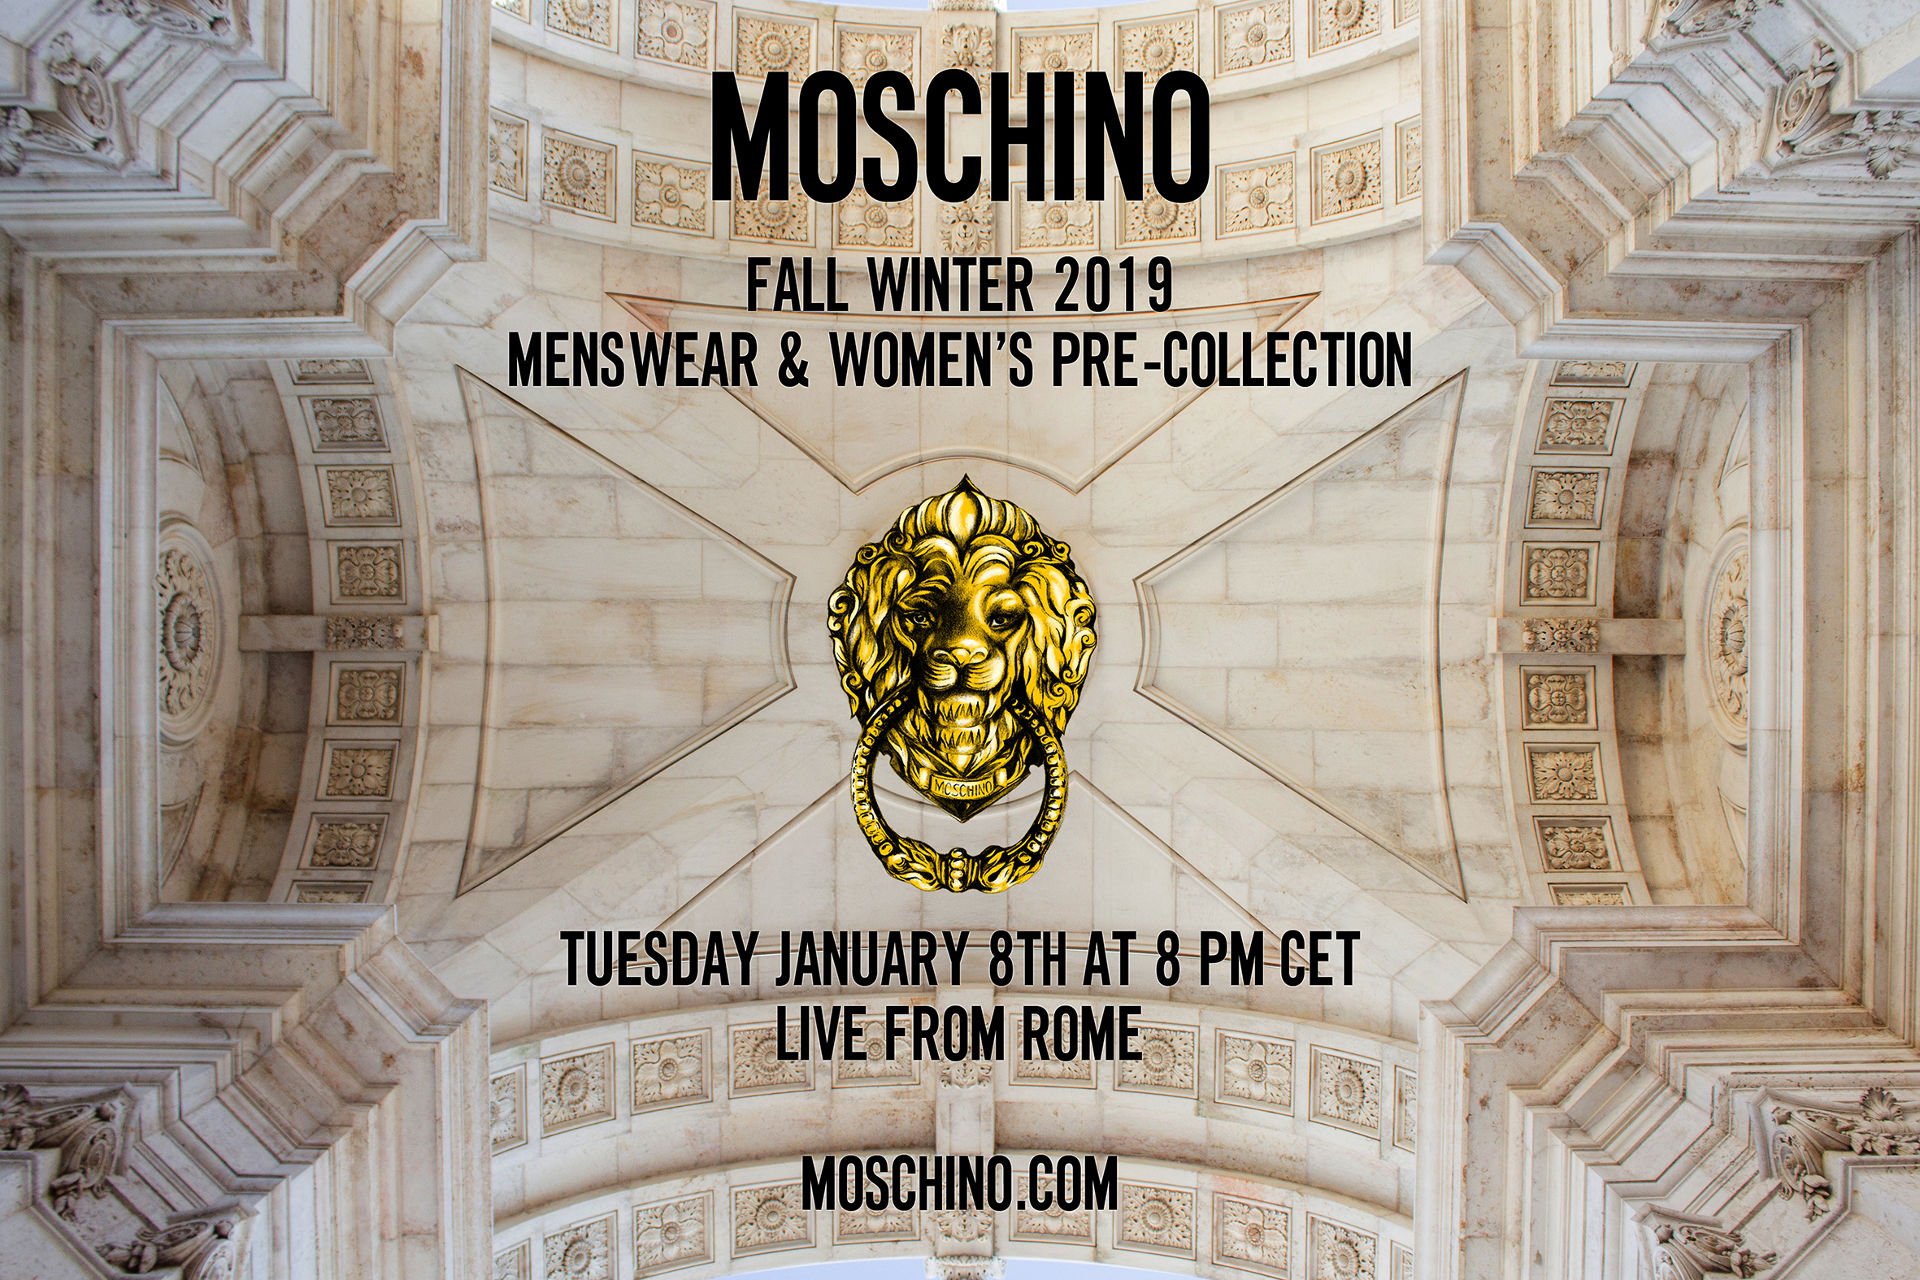 Moschino Fall Winter 2019 Fashion Show Live Streaming